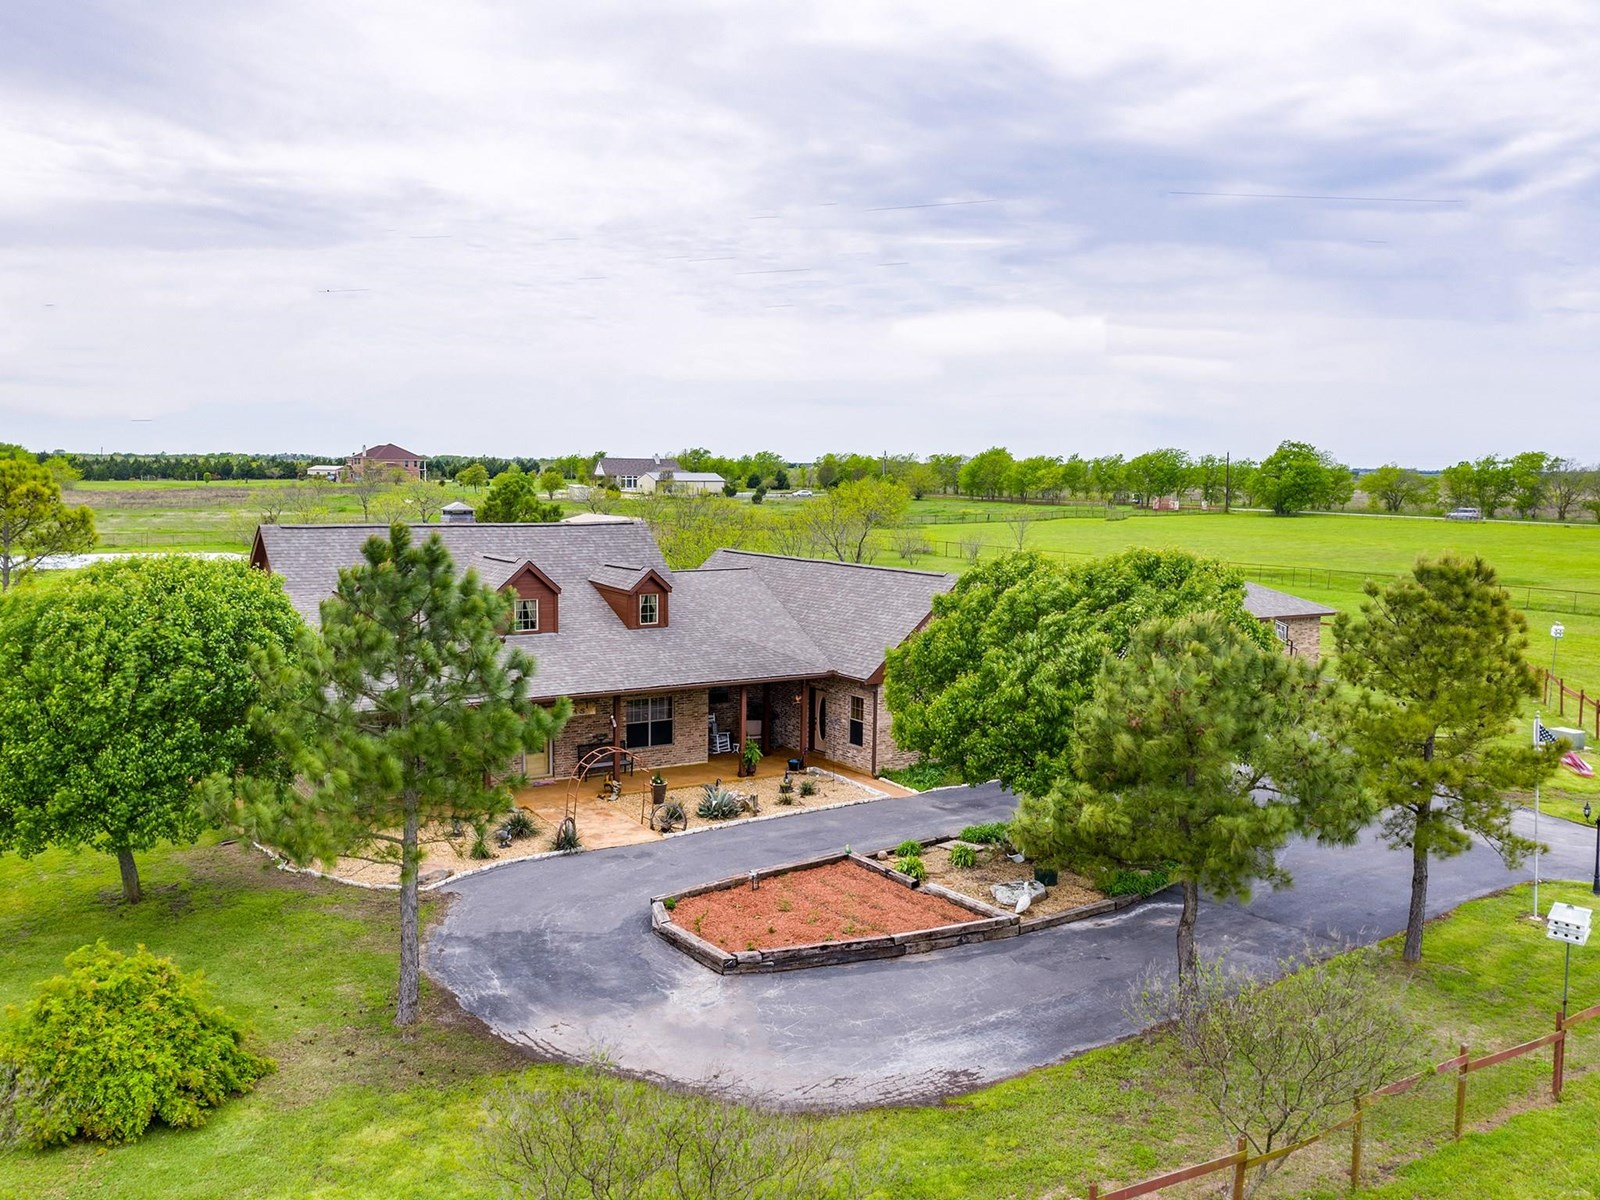 NORTH TEXAS COUNTRY HOME FOR SALE IN TERRELL, TEXAS